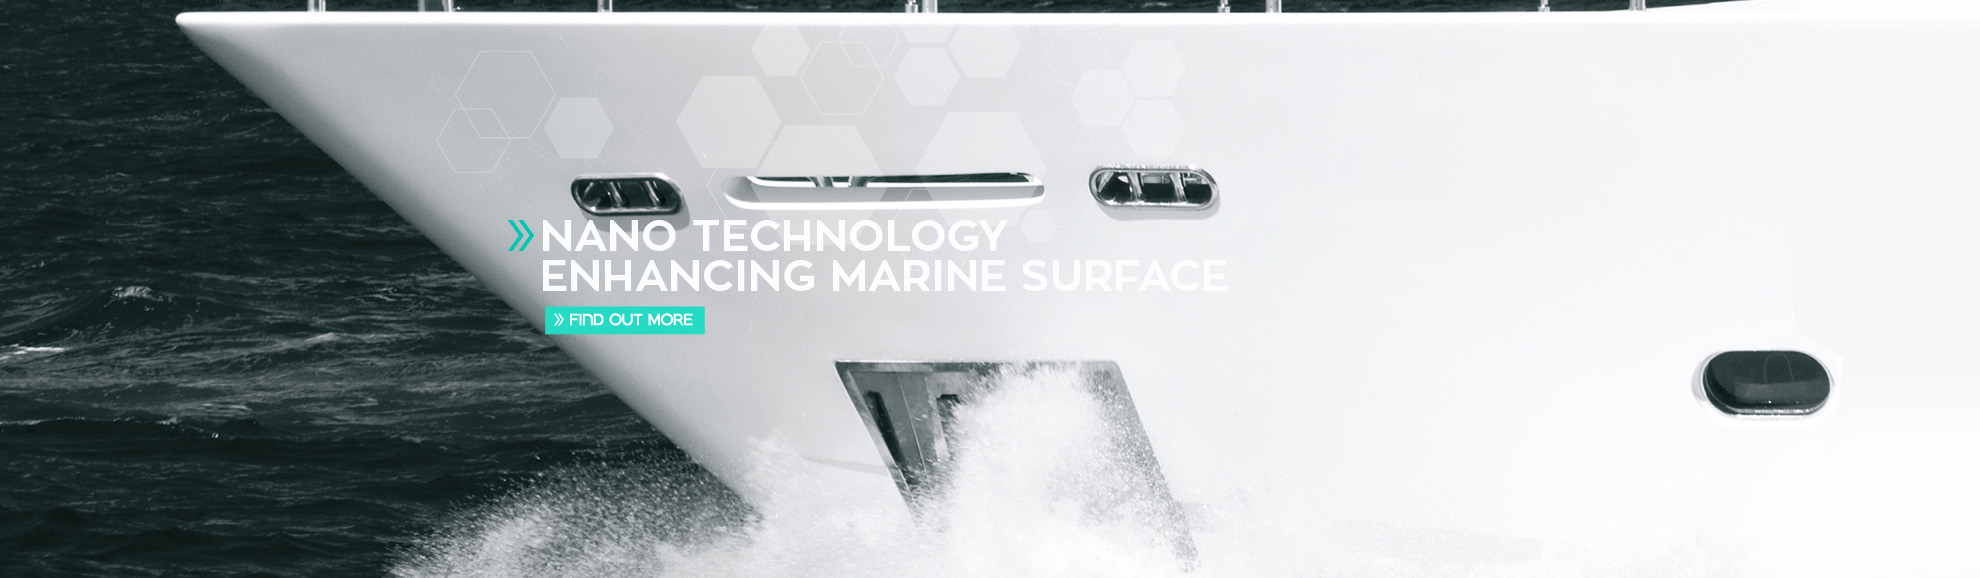 Nano technology enhanced marine surface